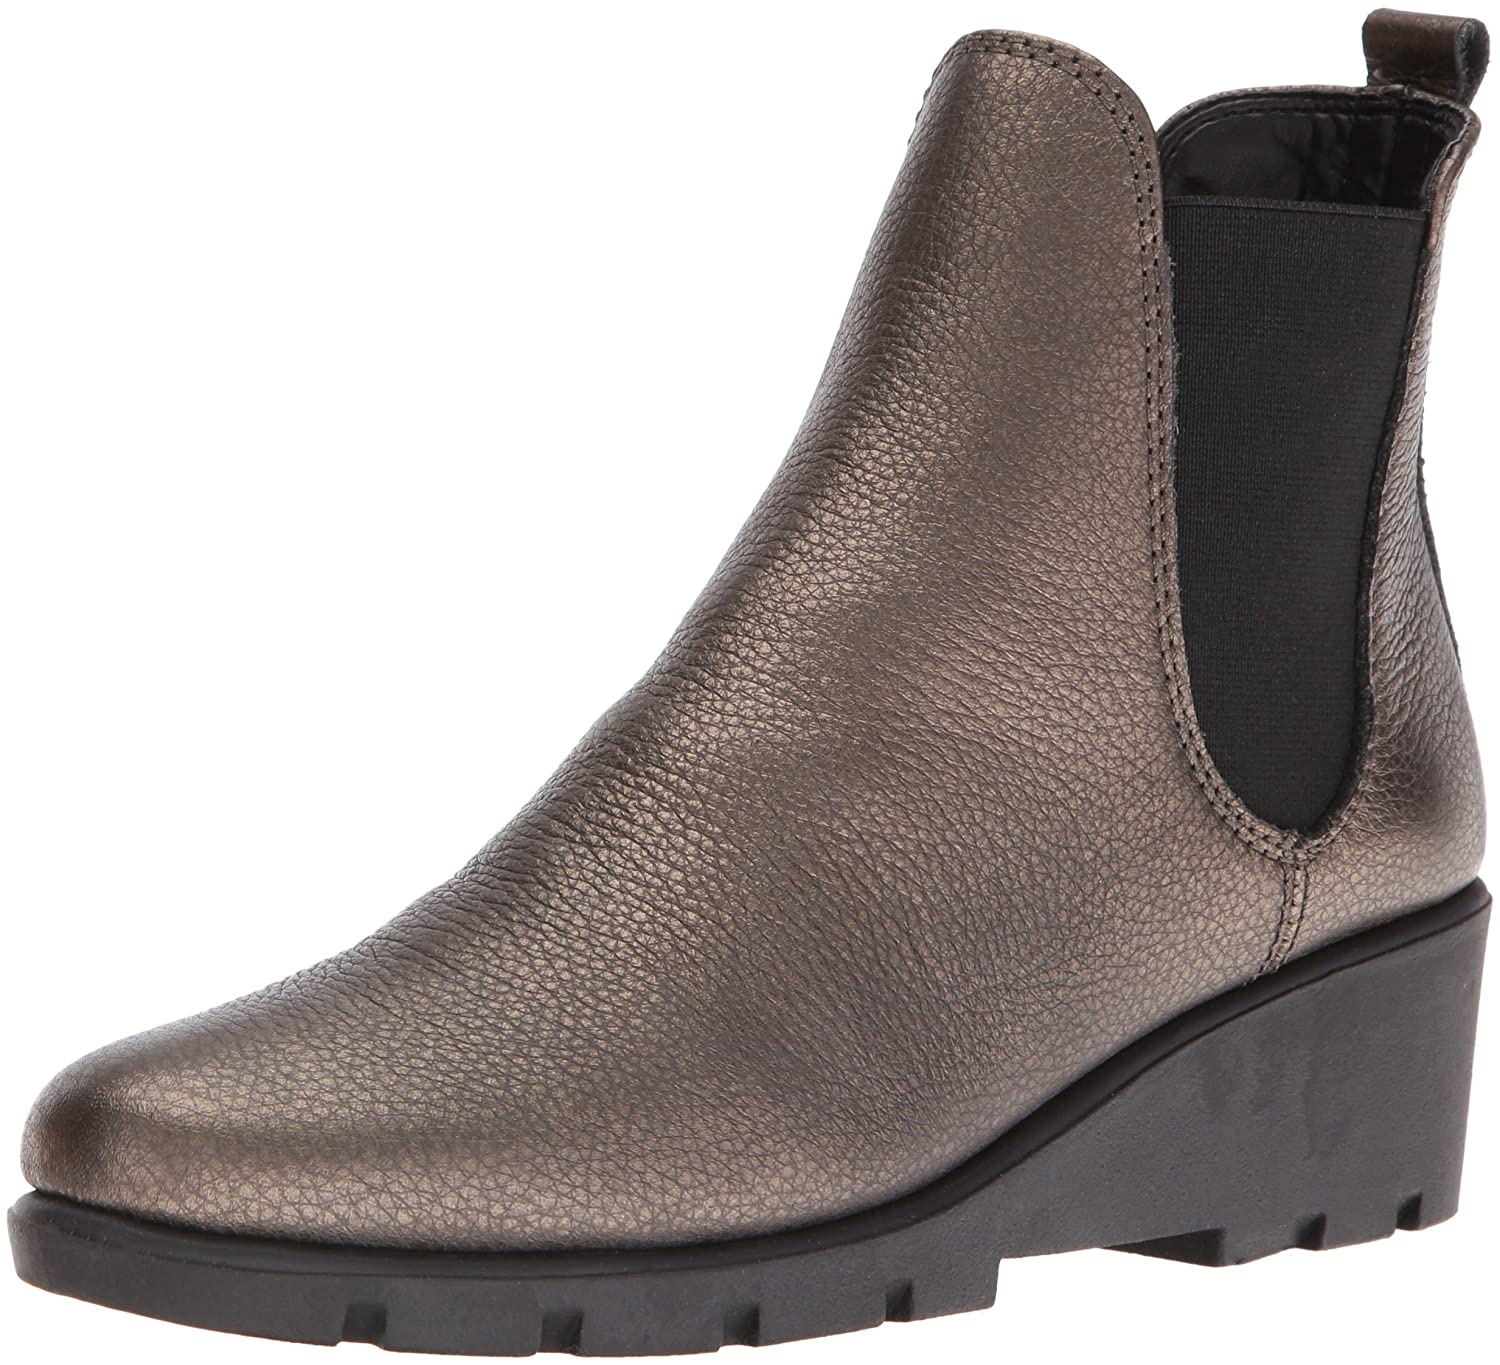 The FLEXX Women's Slimmer Boot B01COOR3UE 10 B(M) US|Canna Di Fucile Smoky